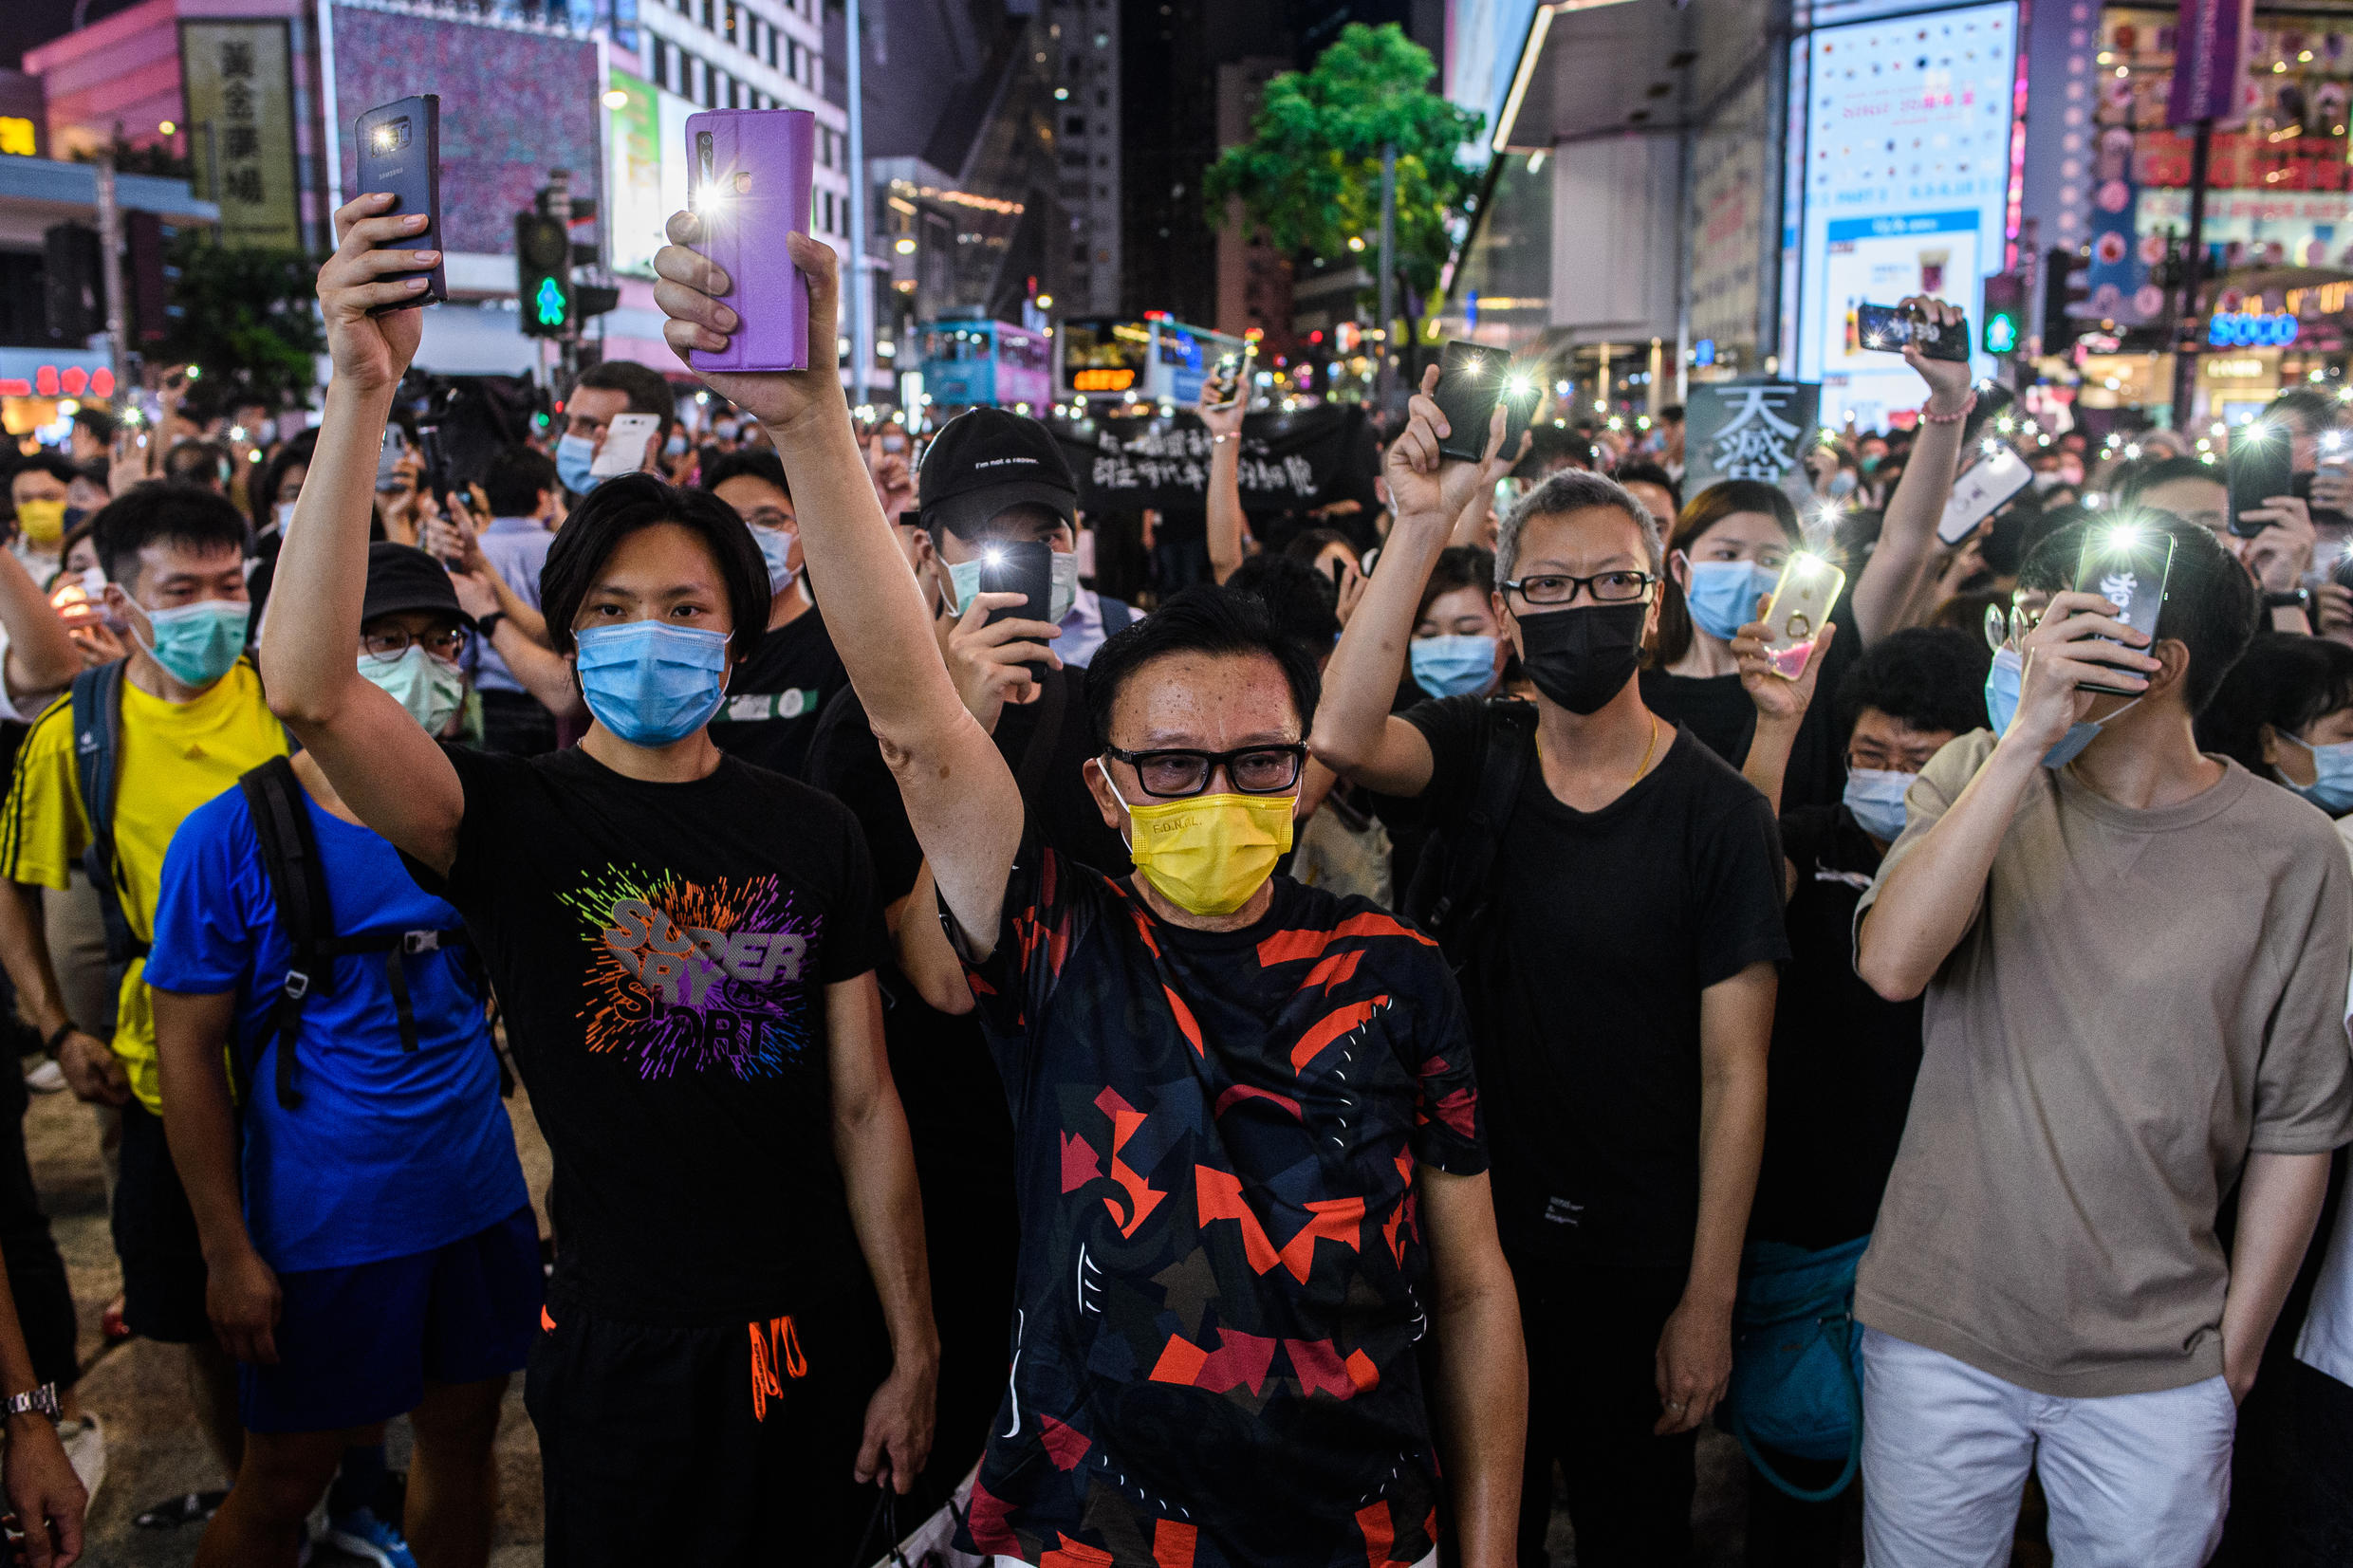 China's new security law in Hong Kong came after the city was shaken by massive pro-democracy protests.